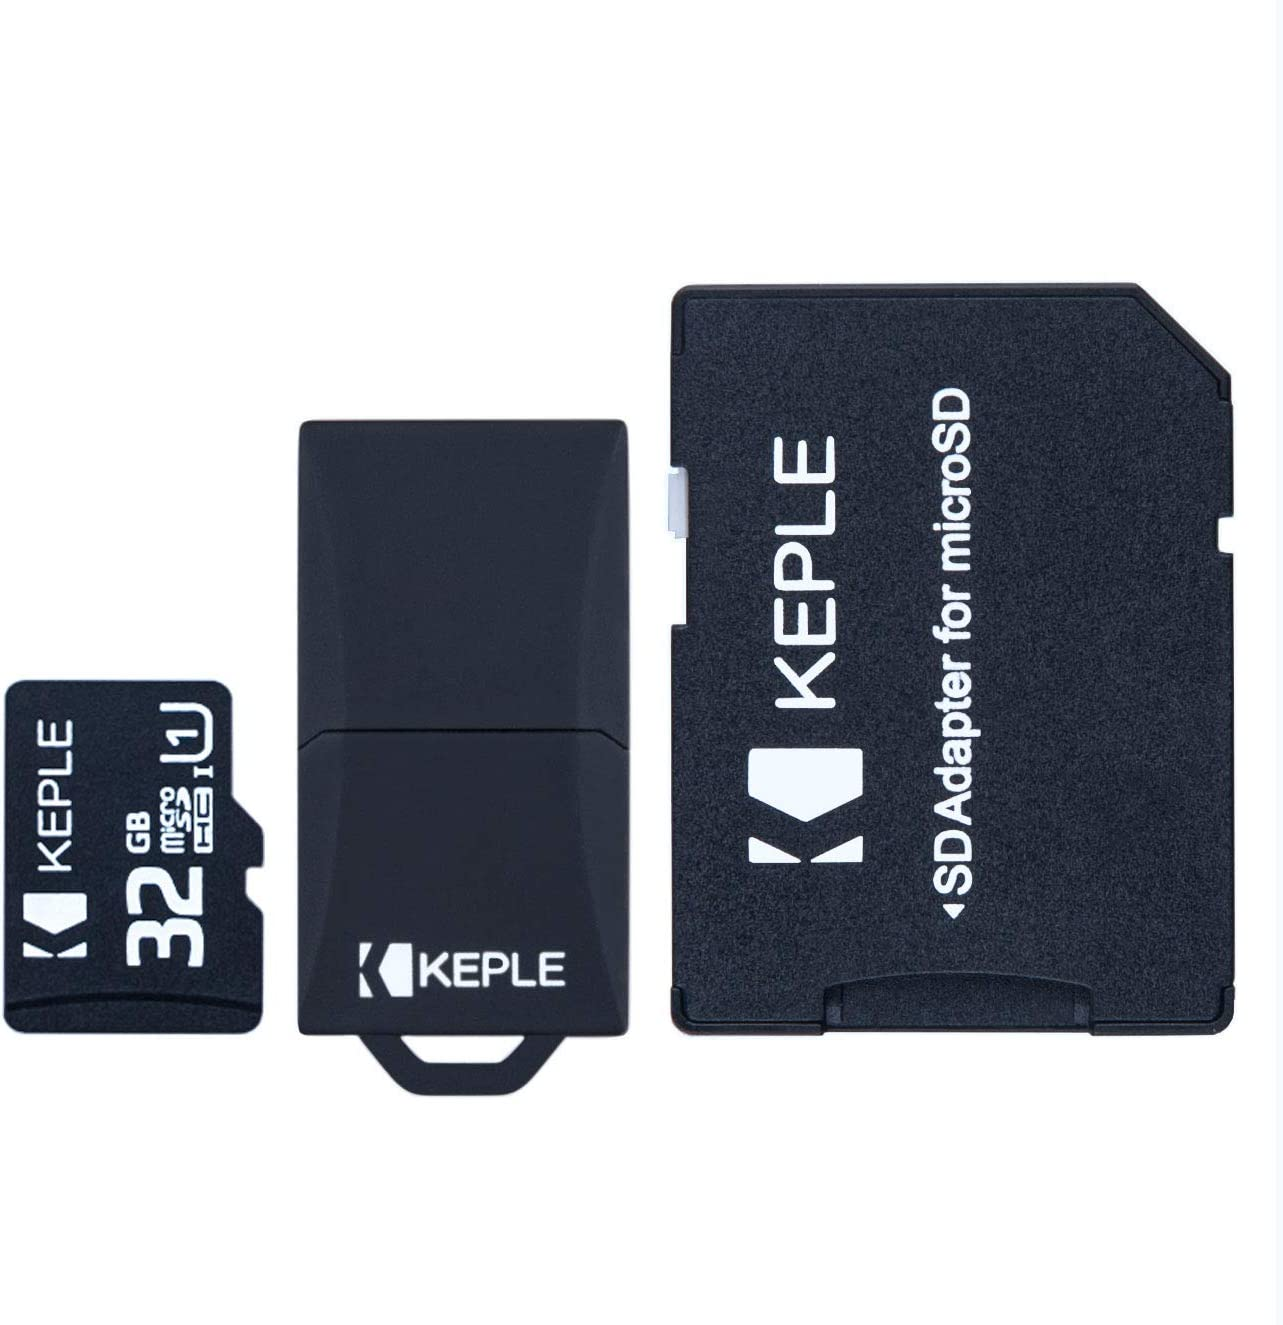 32GB microSD Memory Card | Micro SD Class 10 Compatible with Victure AC600, AC400, AC200 or Dragon Touch Vision 3 Sports Action Cameras Camcorder Action Camera Cameras | 32 GB